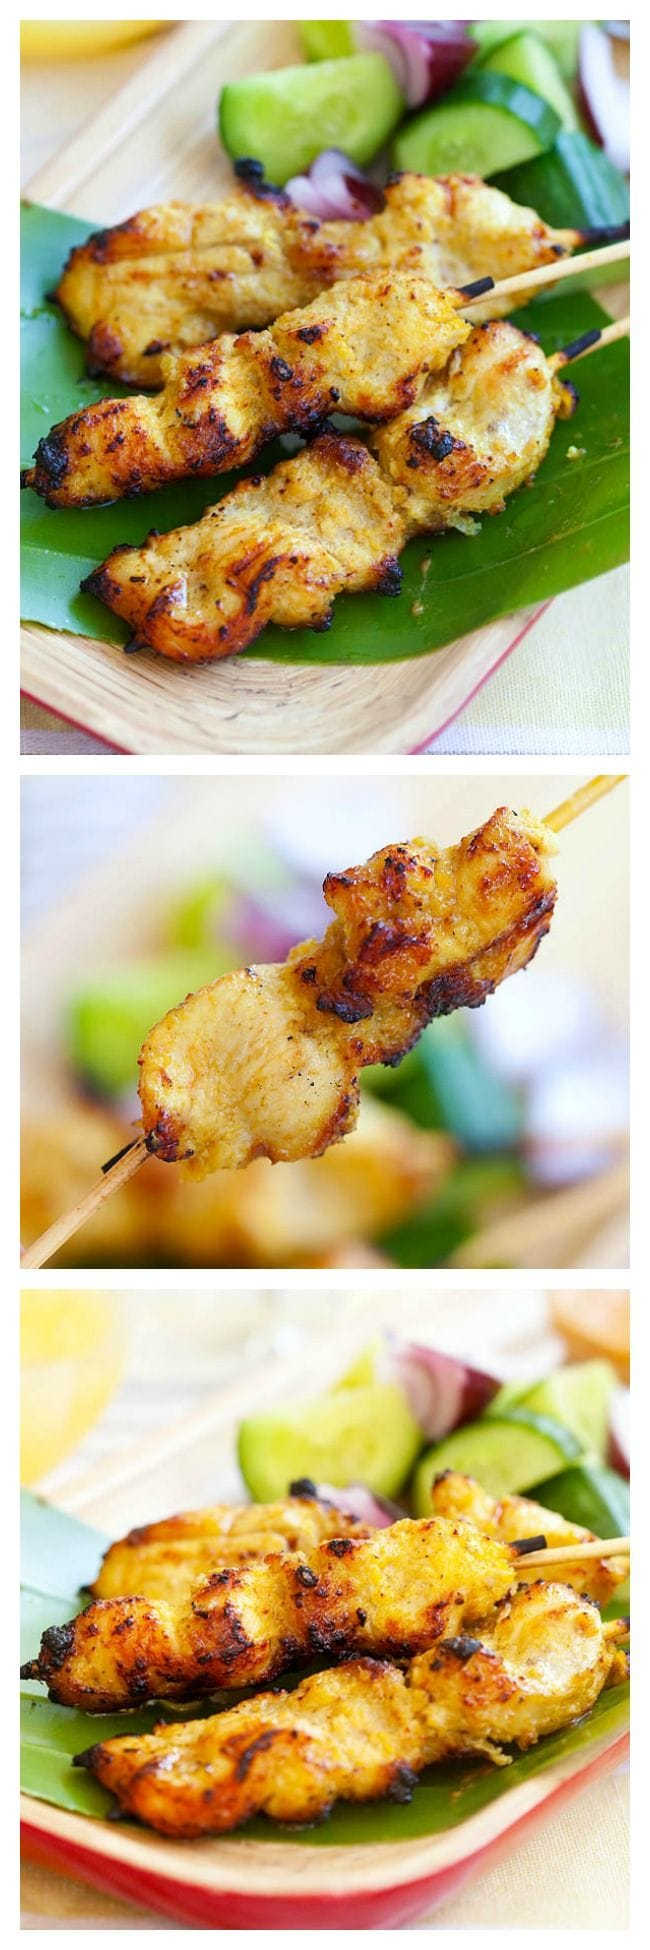 Chicken satay. The most amazing Chicken satay recipe with skewered marinated chicken and grilled to perfection. Enjoy the end of summer grill with these chicken satay | rasamalaysia.com